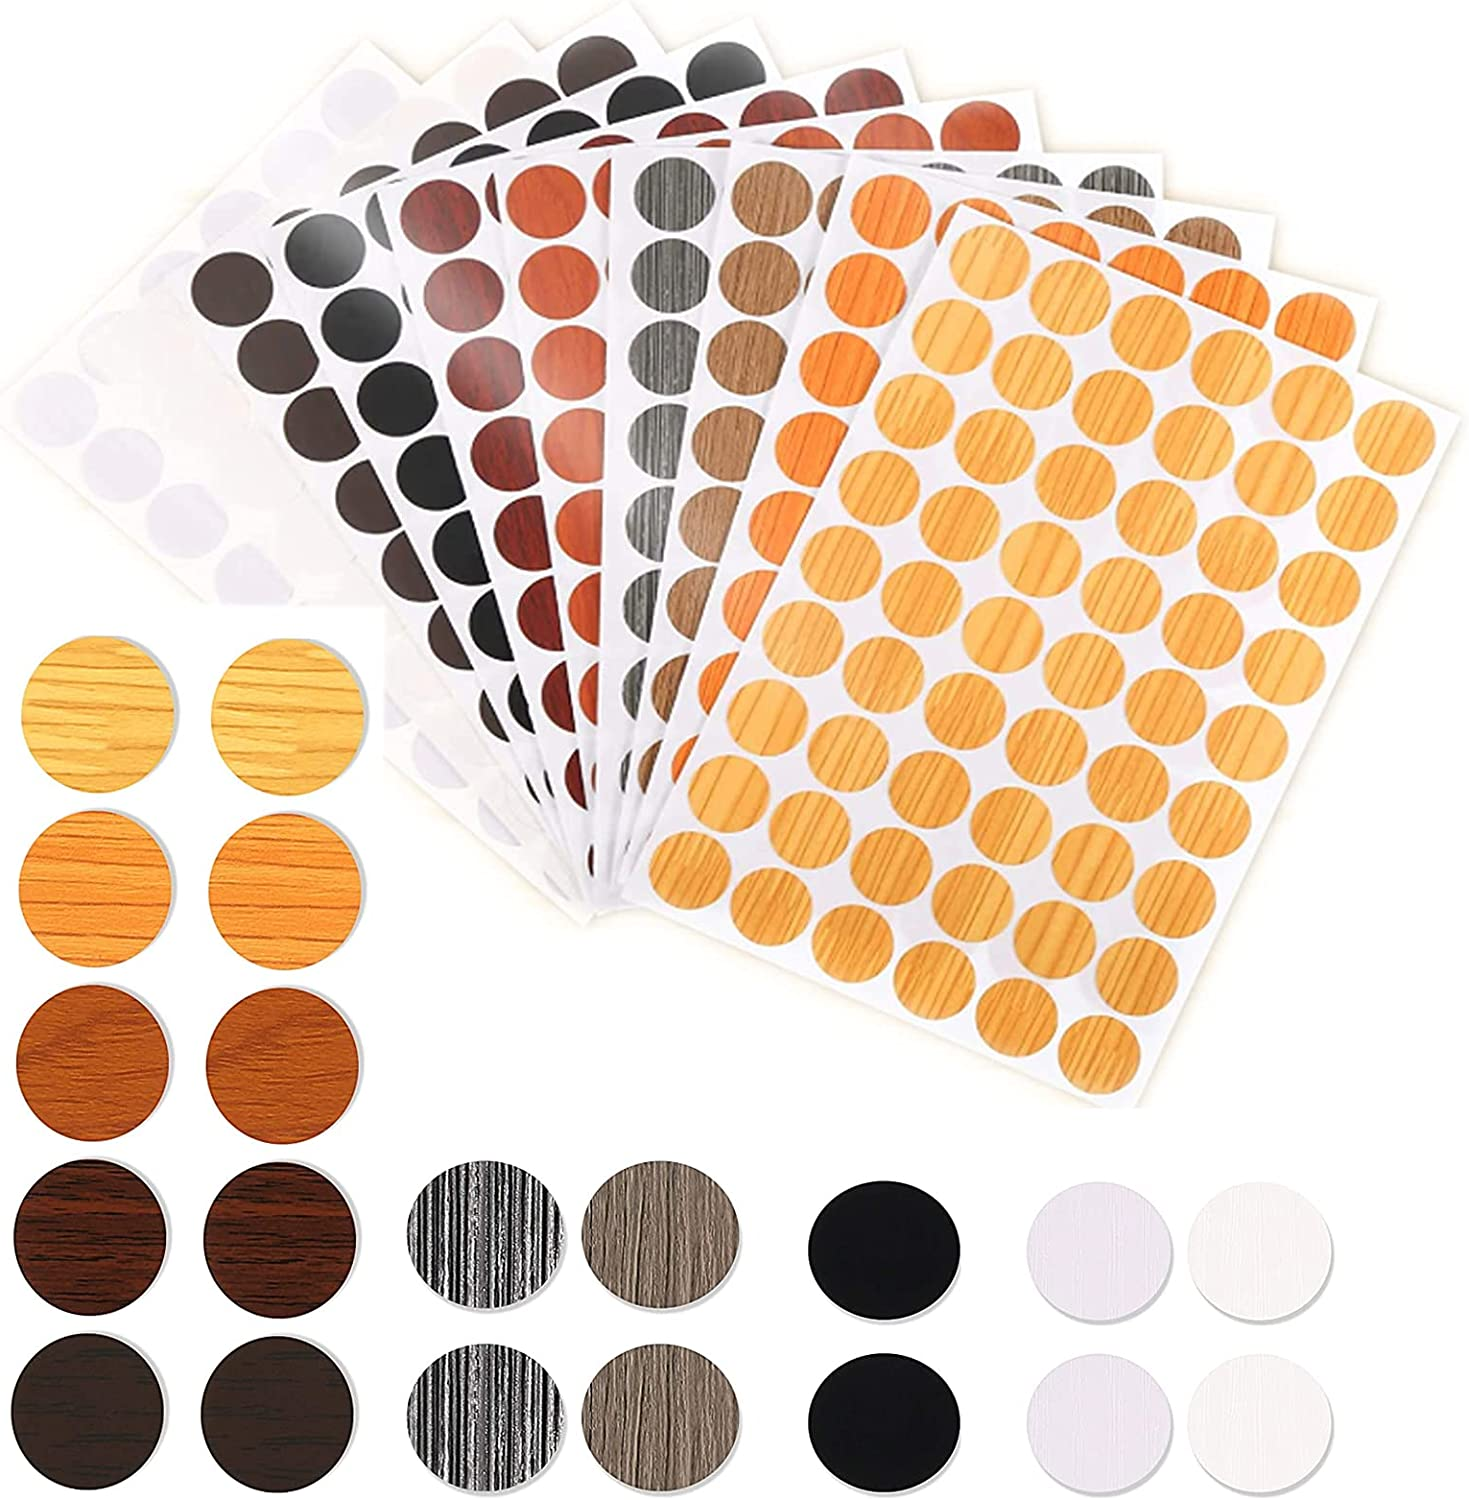 10 Sheets Screw Hole Covers Stickers Wall Decor, 10 Style Self-Adhesive Indie Furniture Stickers, Waterproof PVC Cover Caps Stickers for Wall Hole Furniture Repairing, Room Decor for Desk Cabinets.